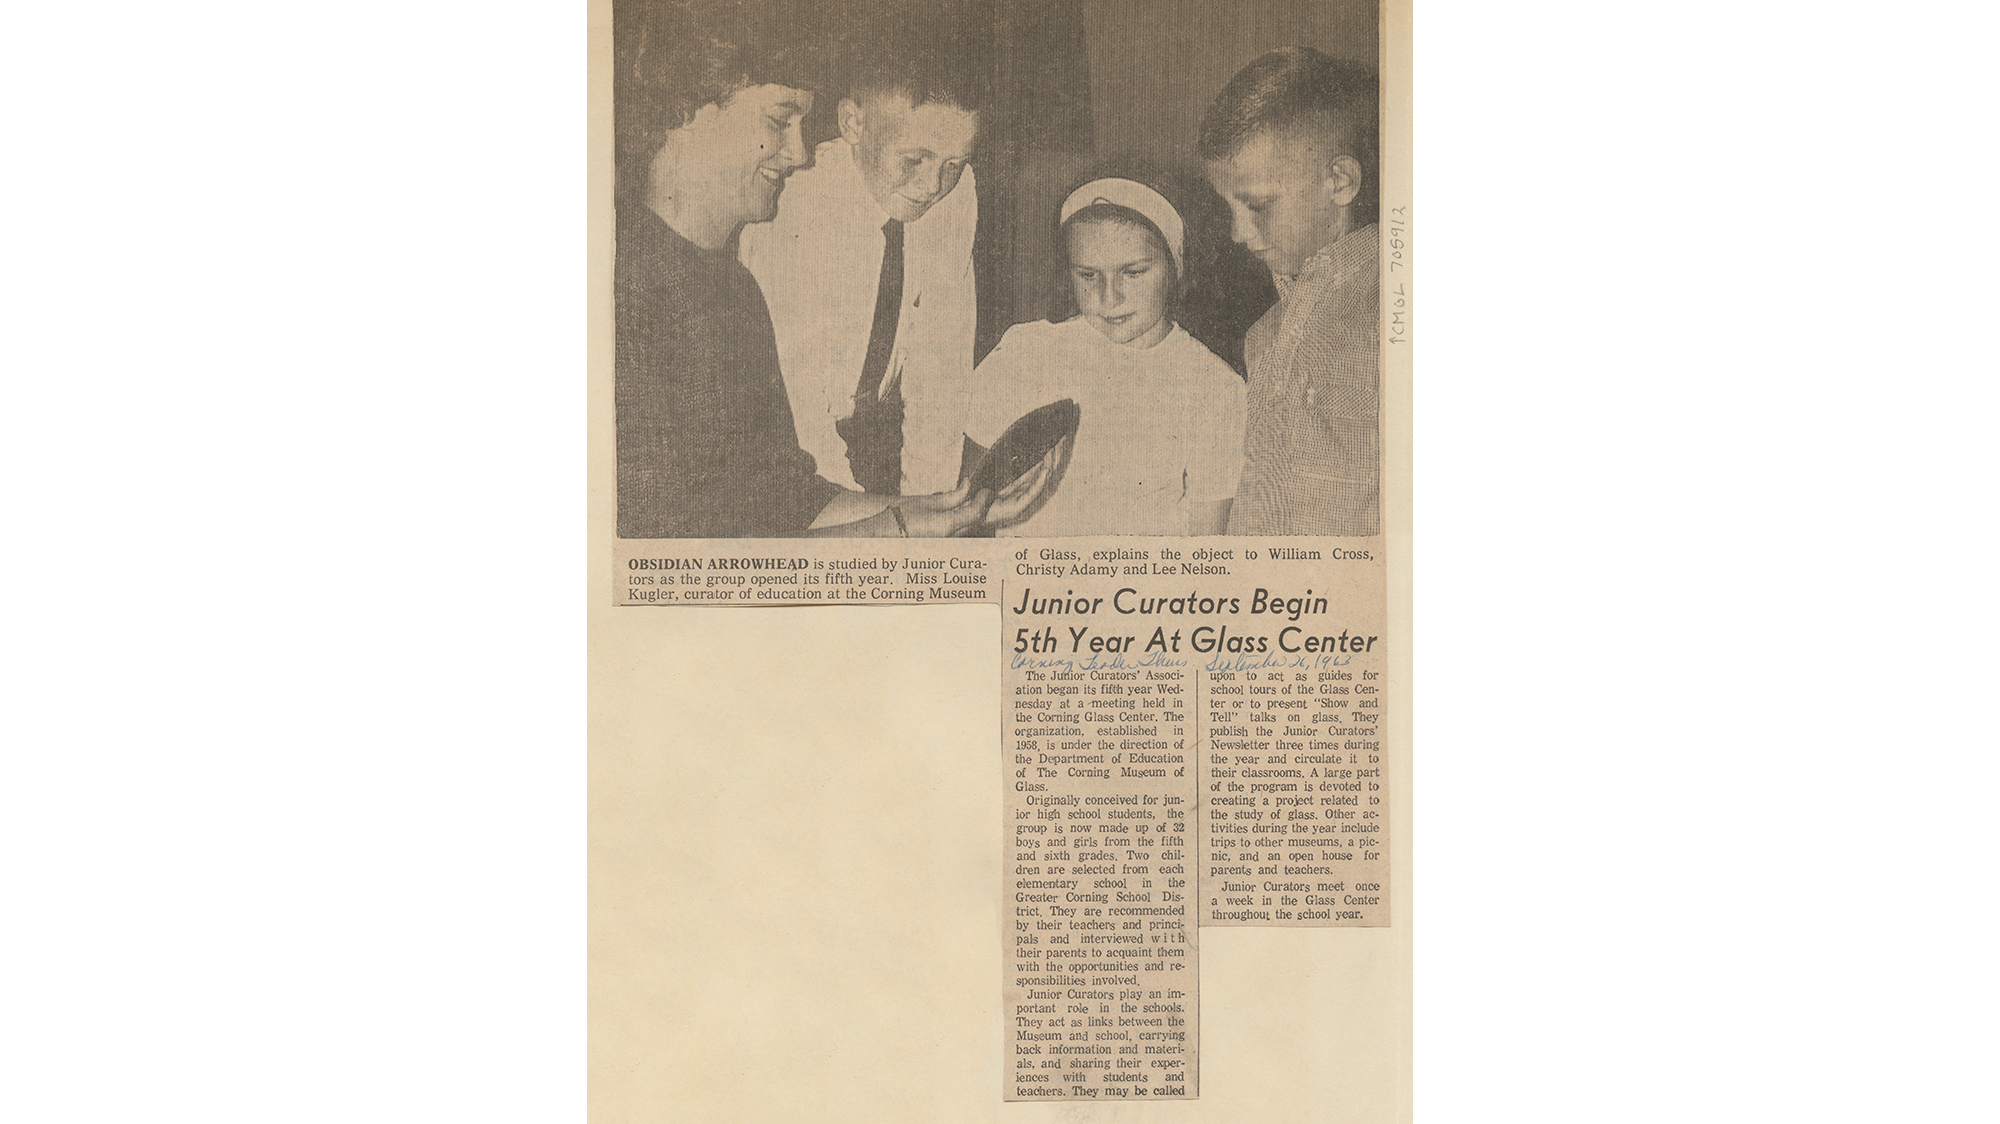 'Junior Curators Begin 5th Year at Glass Center,' Corning Leader,  September 26, 1963, Corning Museum of Glass Education Department Junior Curators Program Records, CMOG RG10 S05